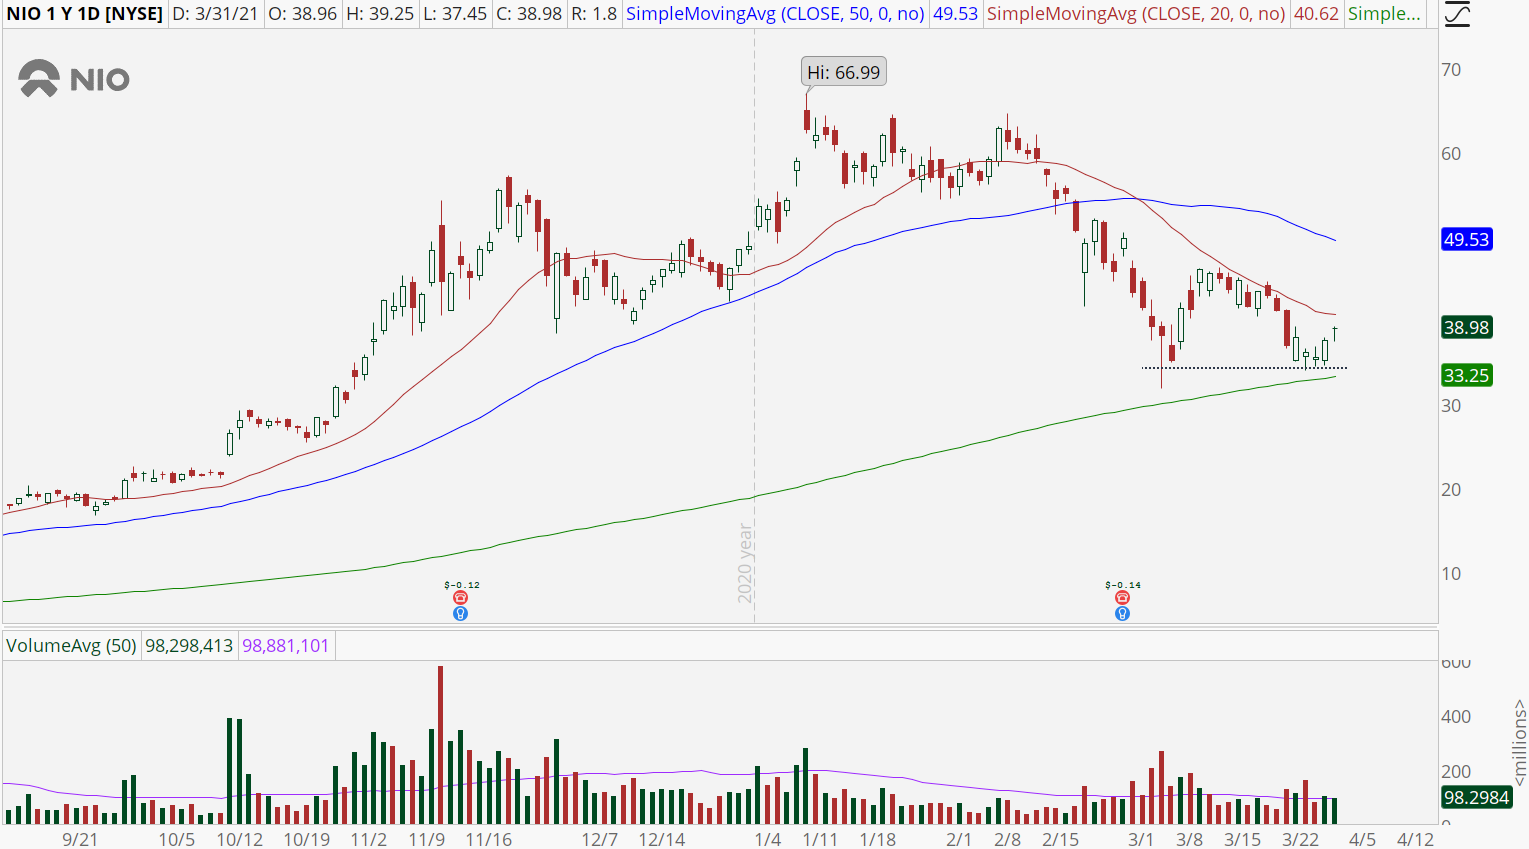 Nio (NIO) stock chart with double bottom pattern forming